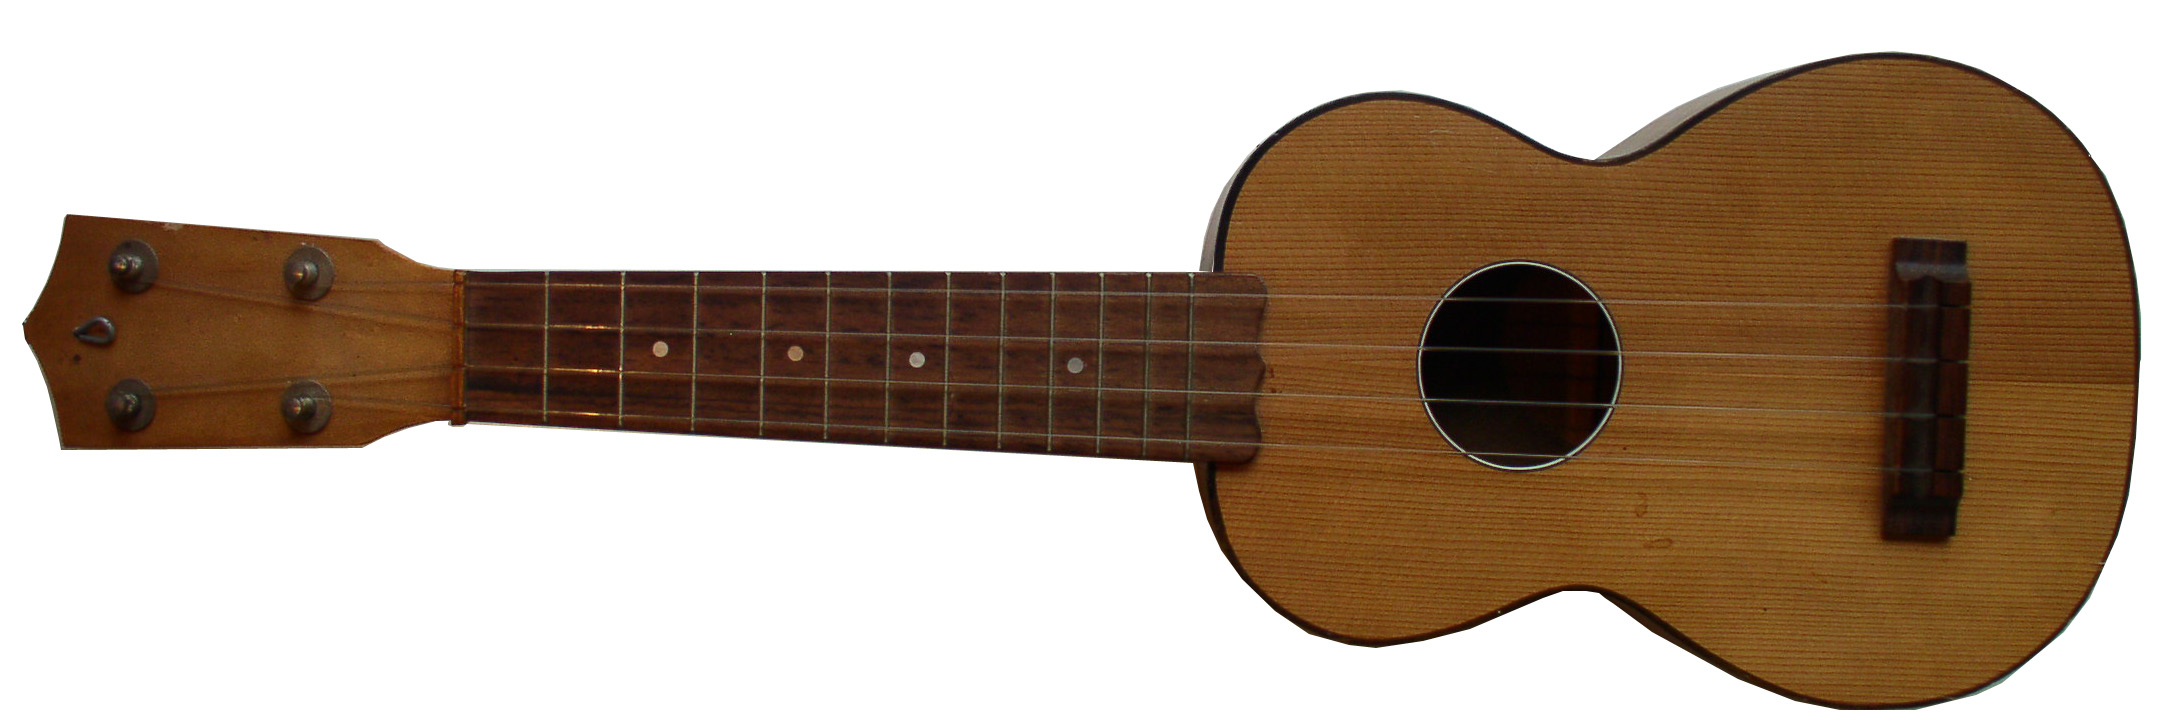 ukulele (Dec 30 2012 21:41:24) ~ Picture Gallery